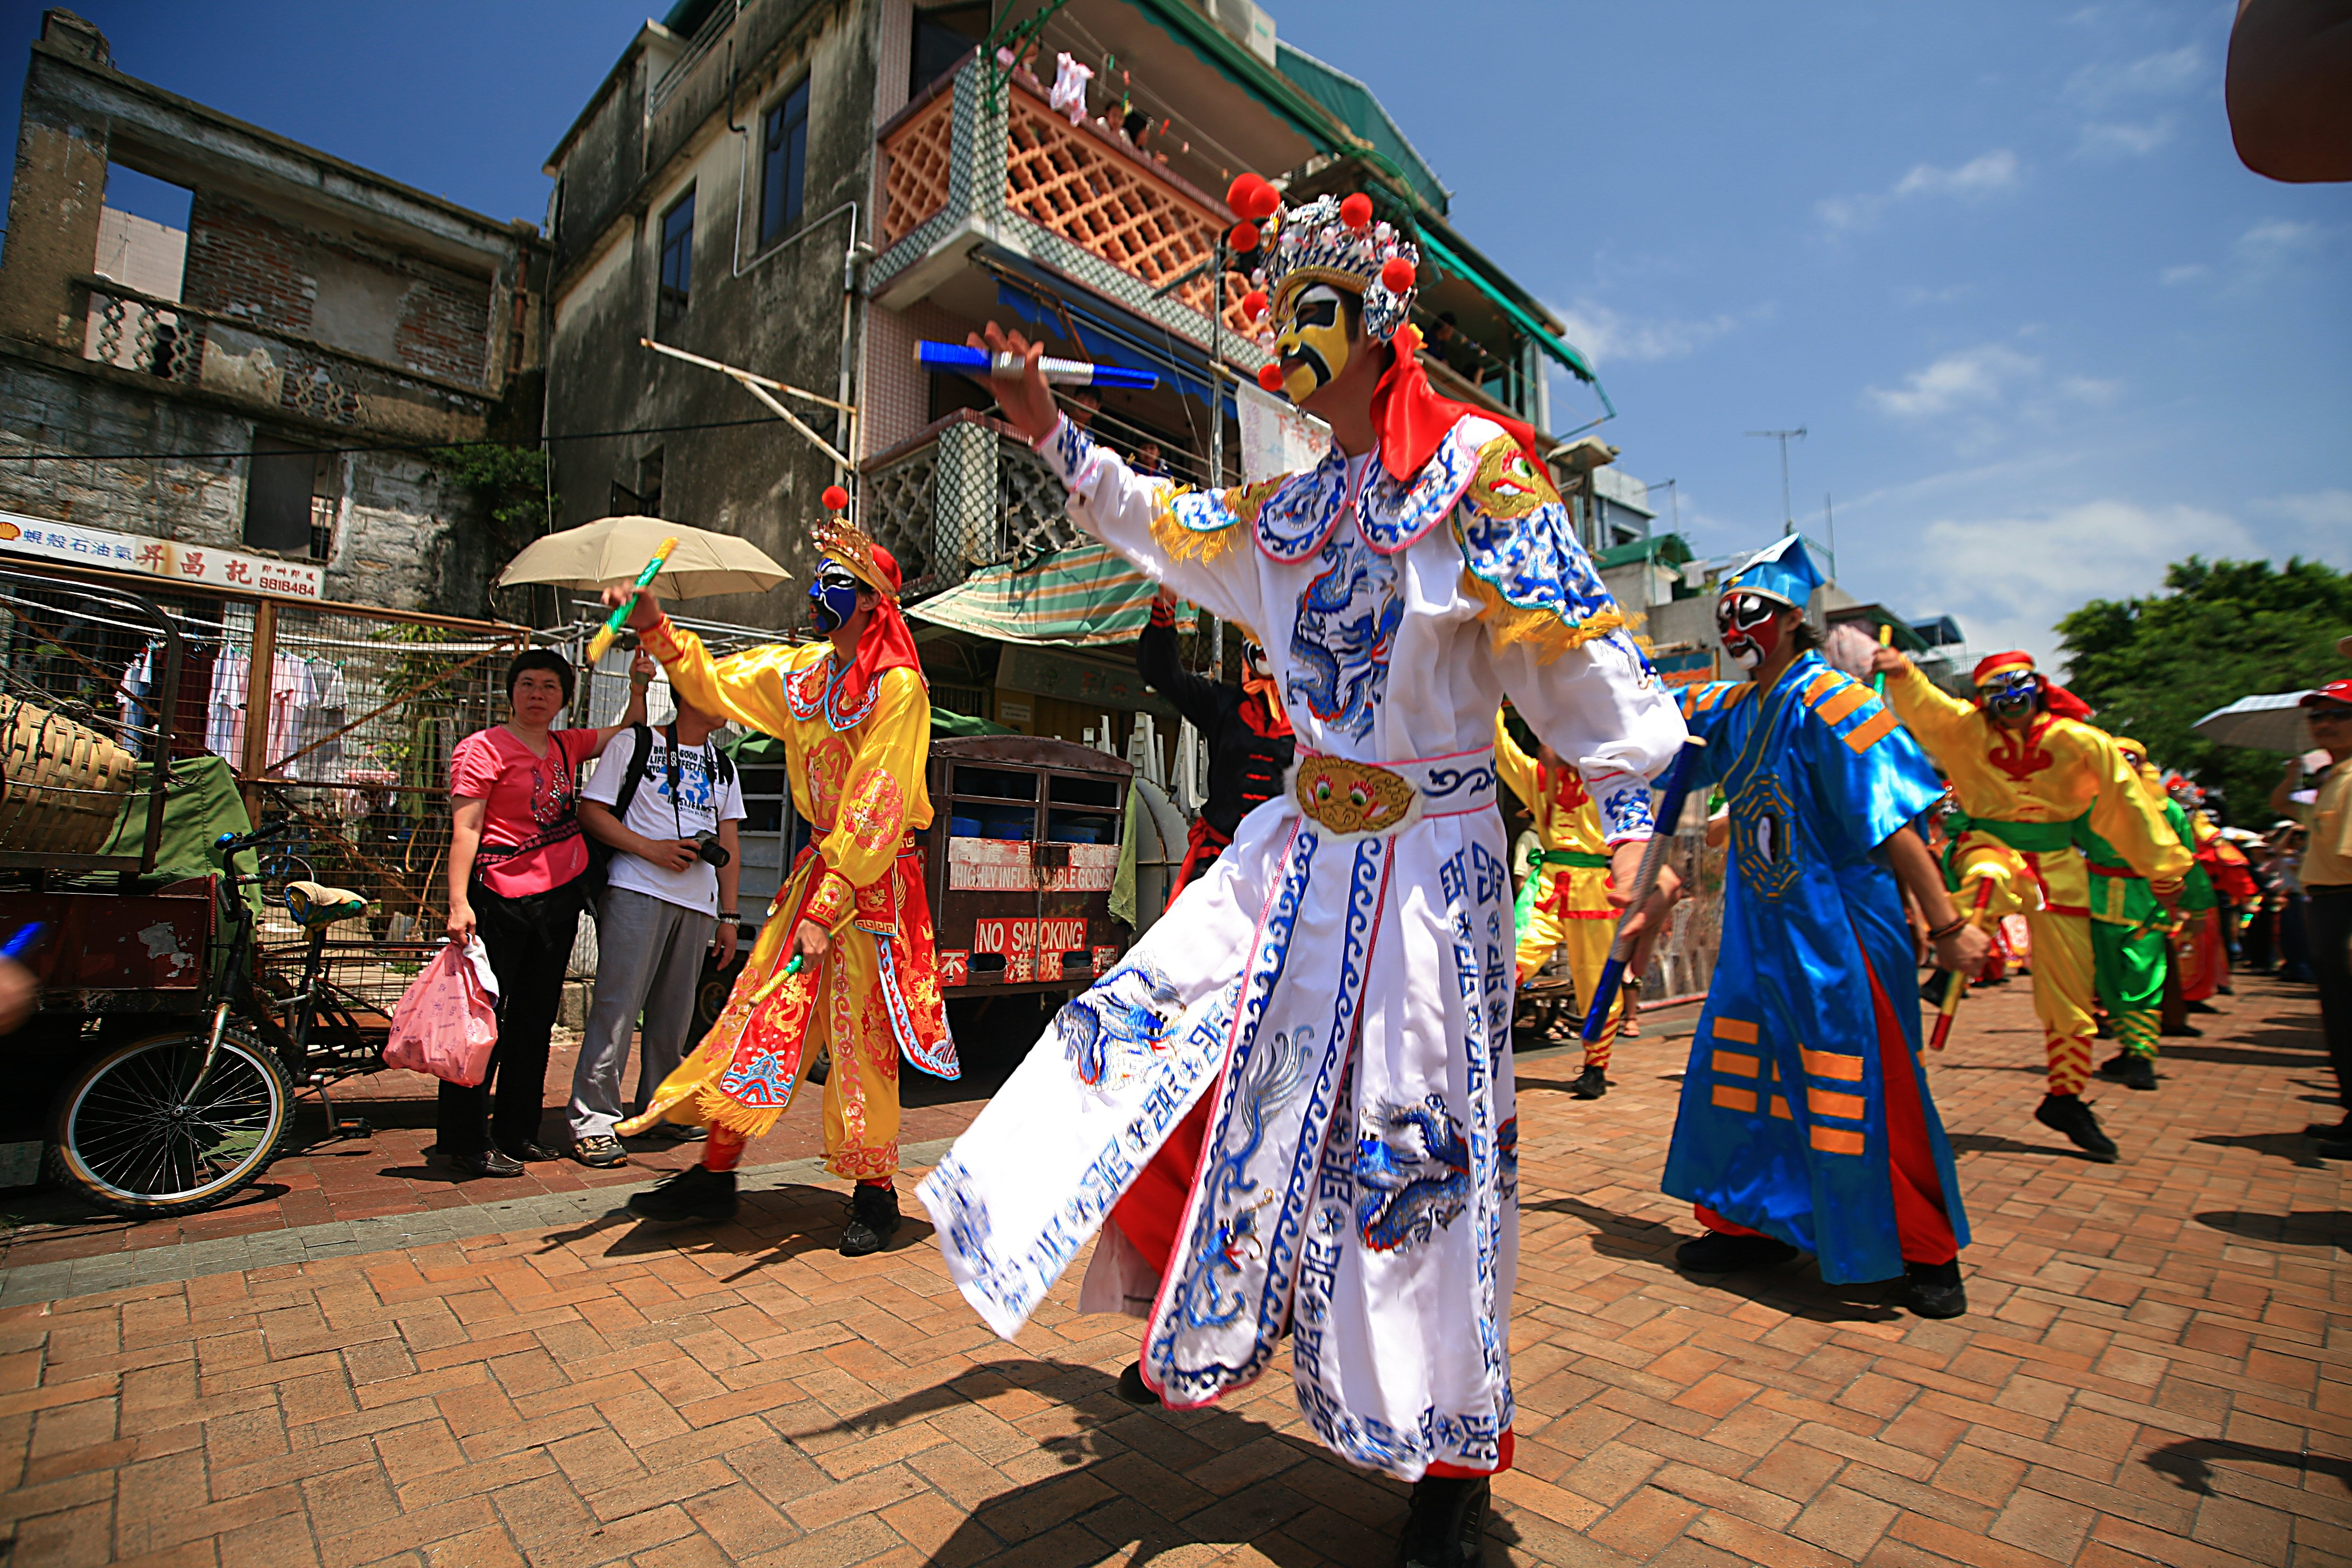 File:Bun festival Flying colors parade Cheung Chau.jpg - Wikipedia ...